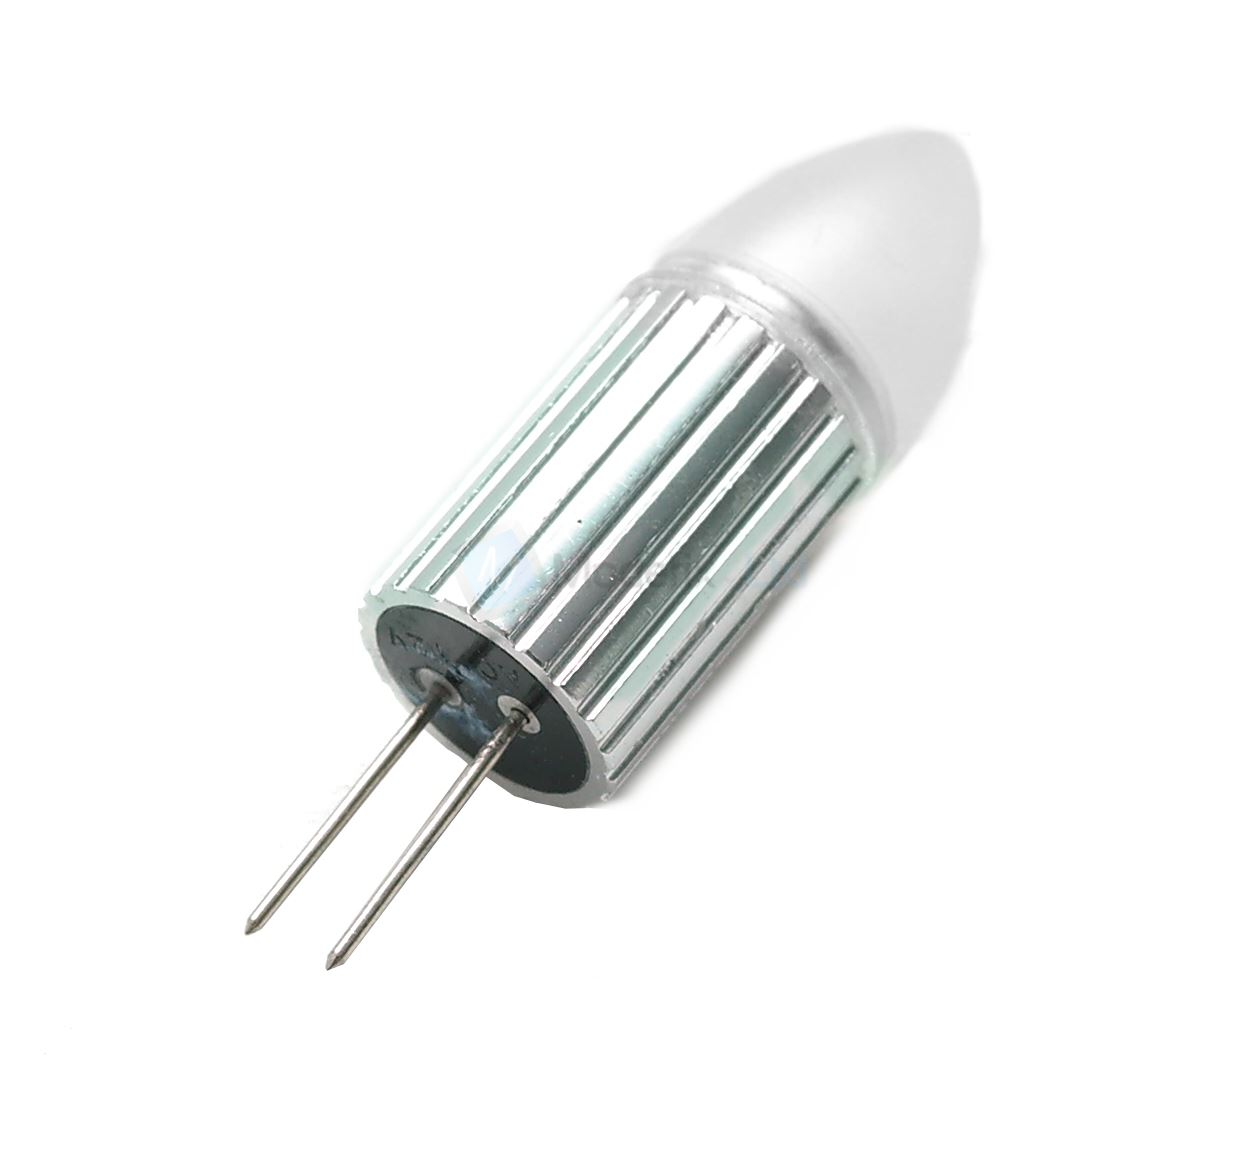 g4 led ac dc 12v 220v cob light bulb lamp car boat caravan direct halogen rep ebay. Black Bedroom Furniture Sets. Home Design Ideas